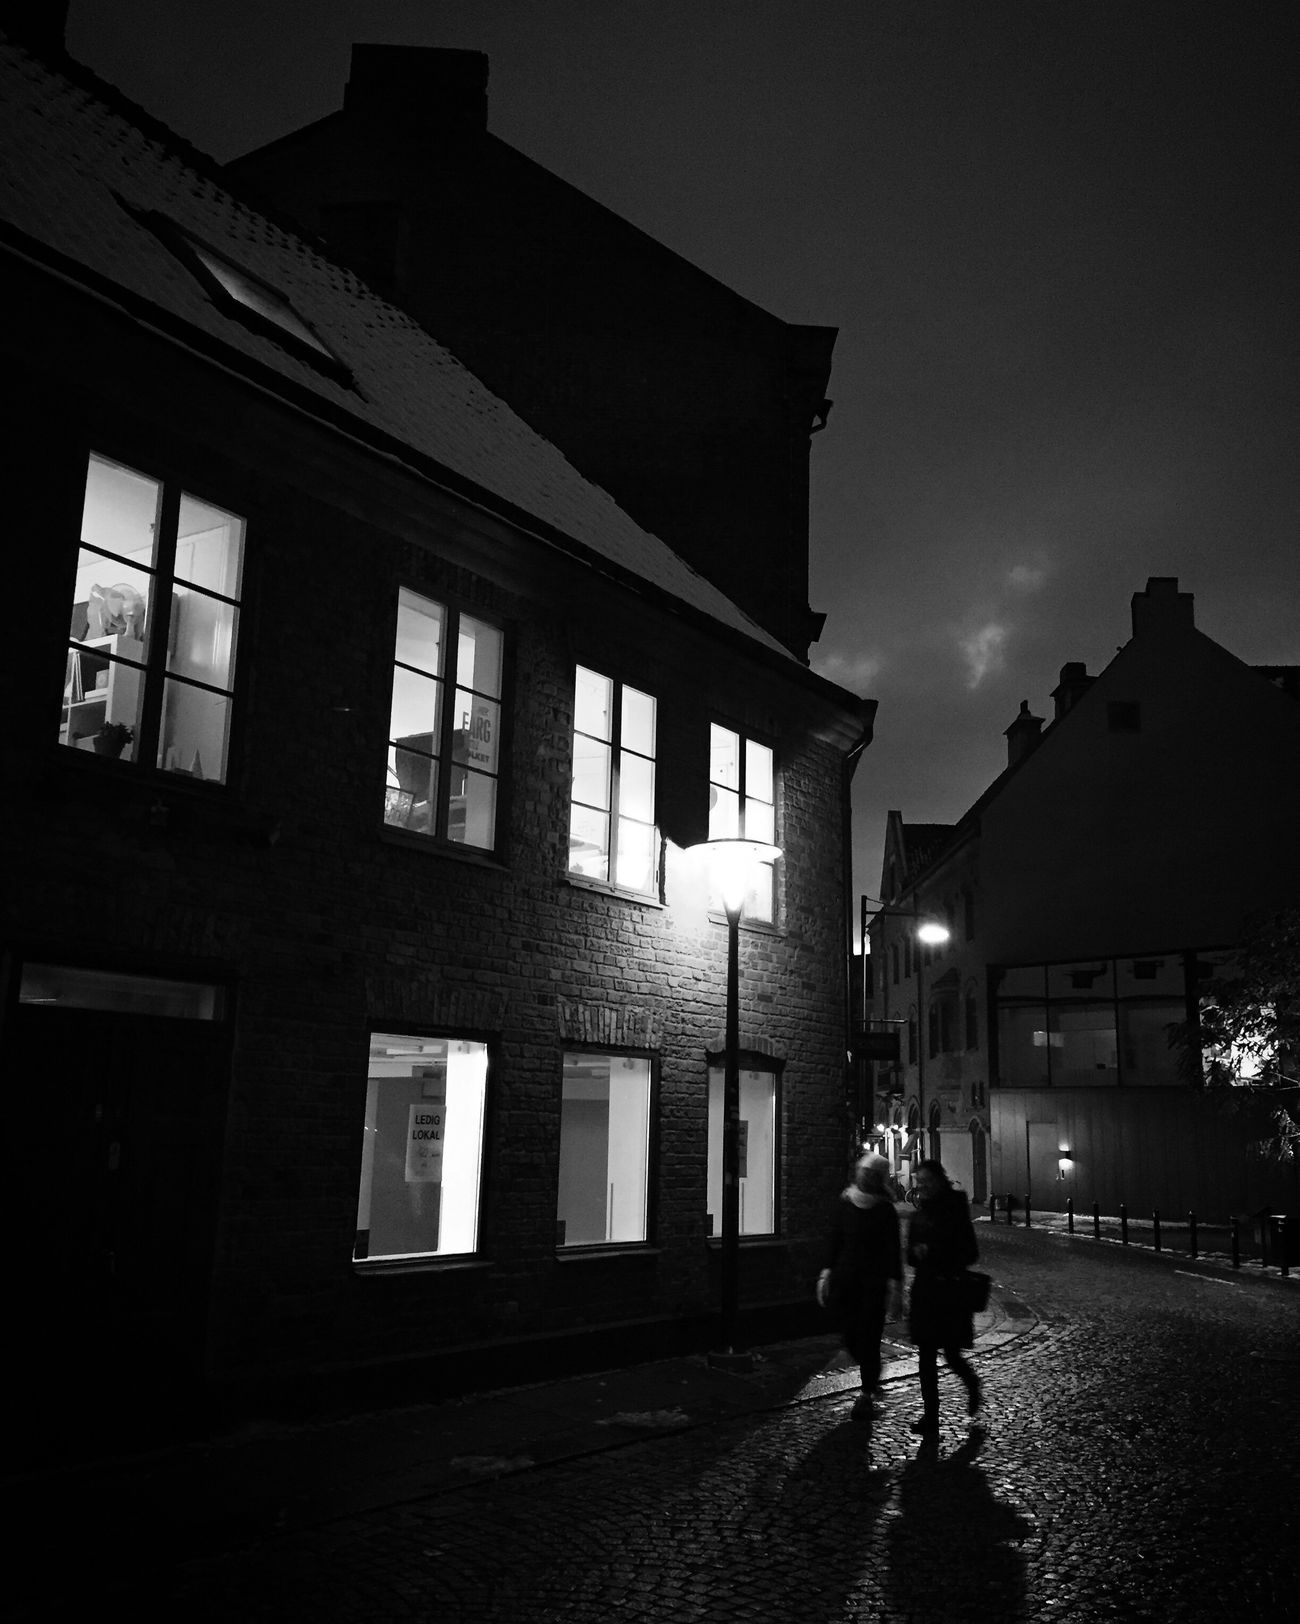 Shootermag Building Exterior Monochrome Silhouette Darkness And Light Bw_collection Black And White EyeEm Best Shots - Black + White Street Photography